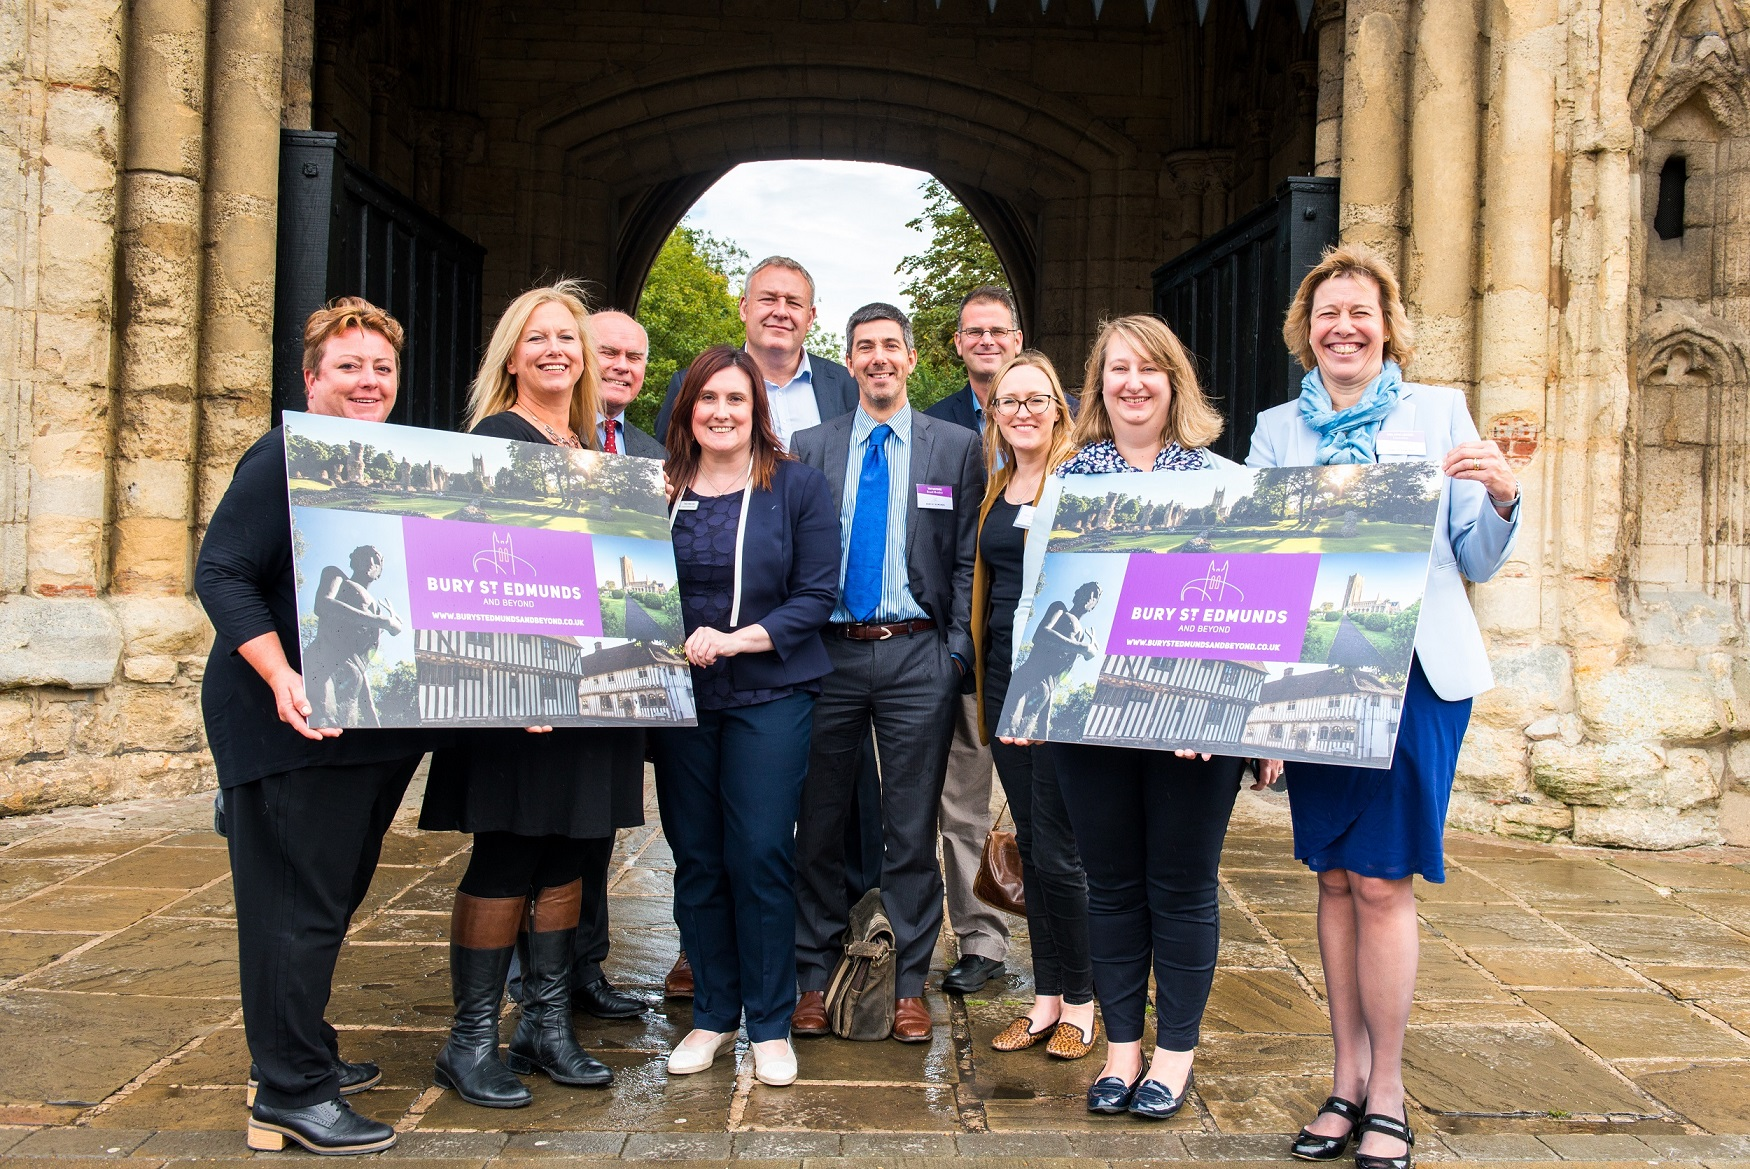 Town's new tourism brand aims to boost overnight stays in Bury St Edmunds and Beyond